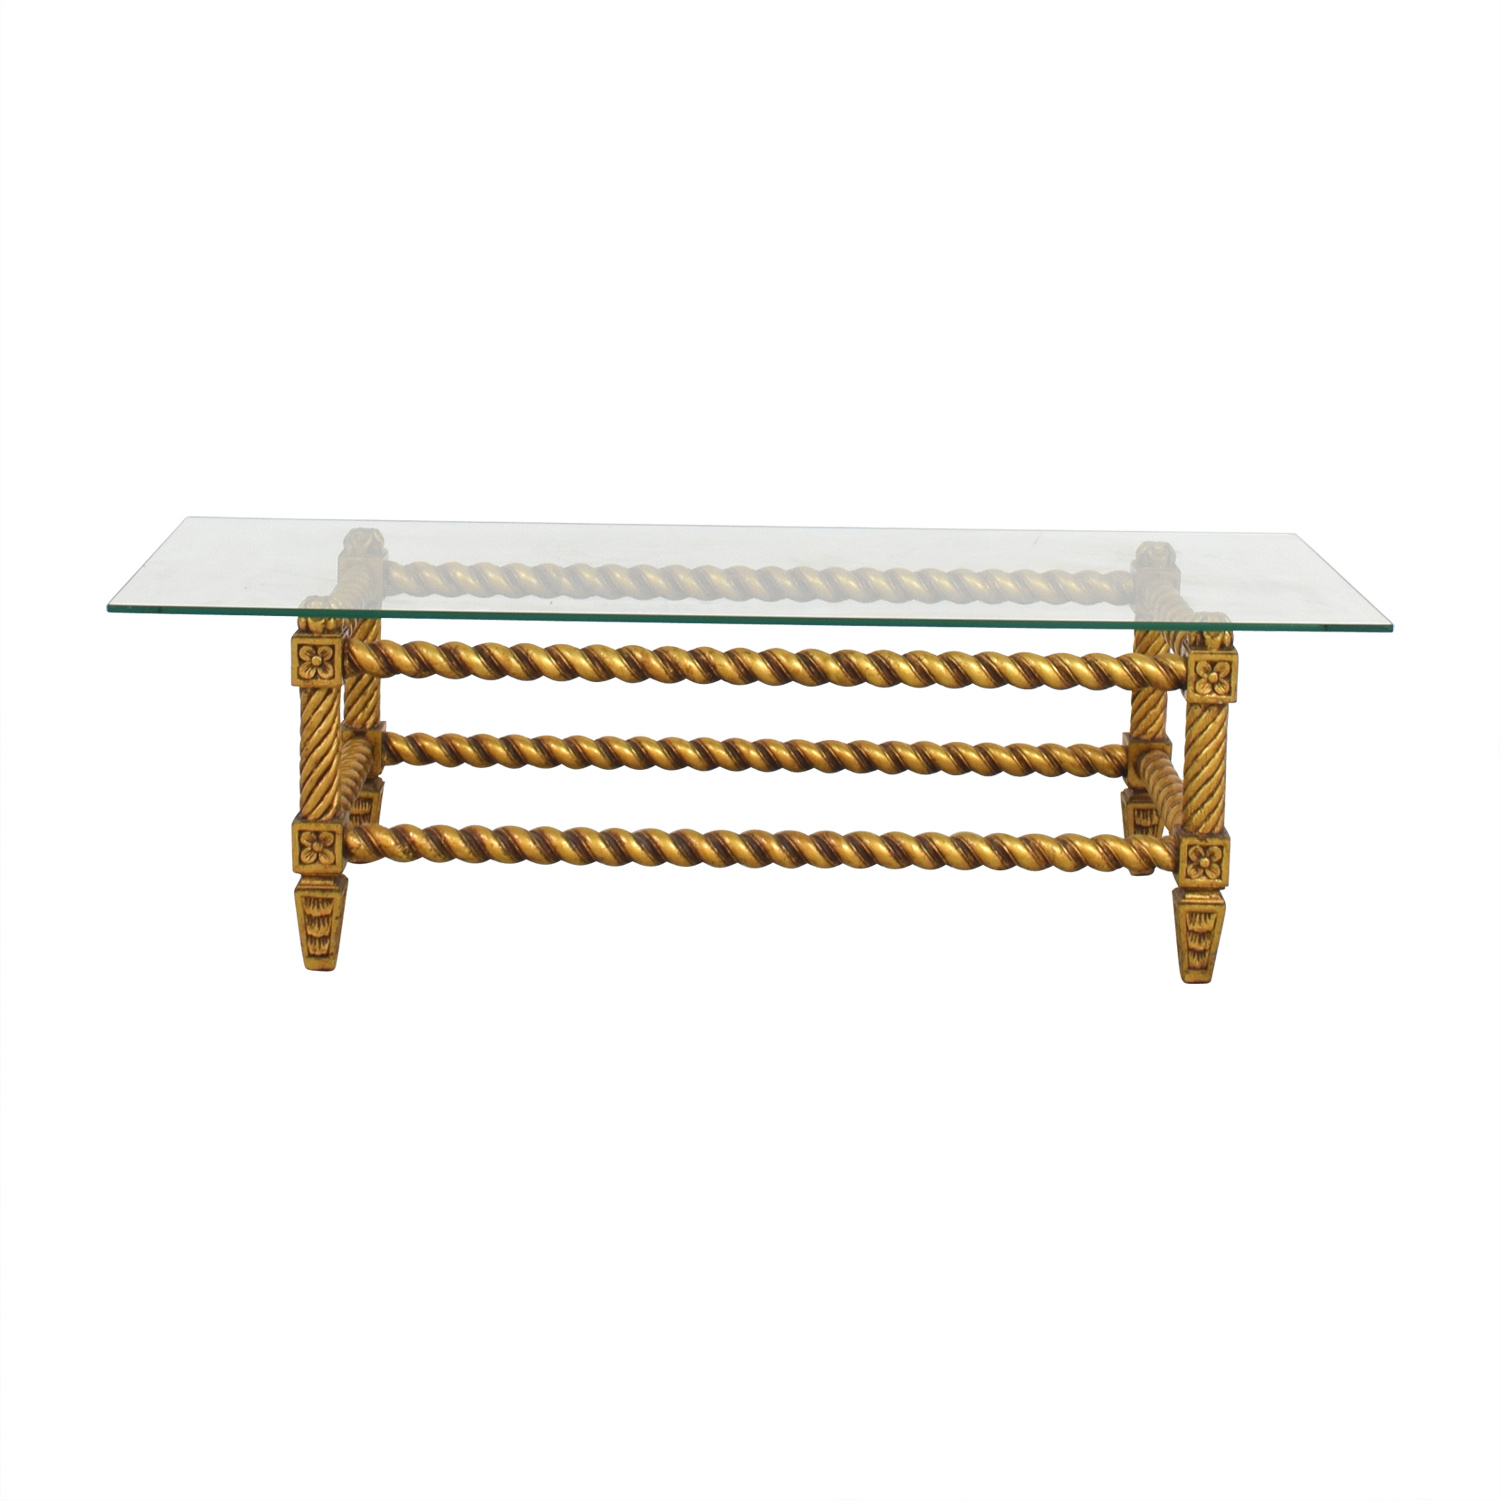 Antique Glass and Gold Framed Coffee Table